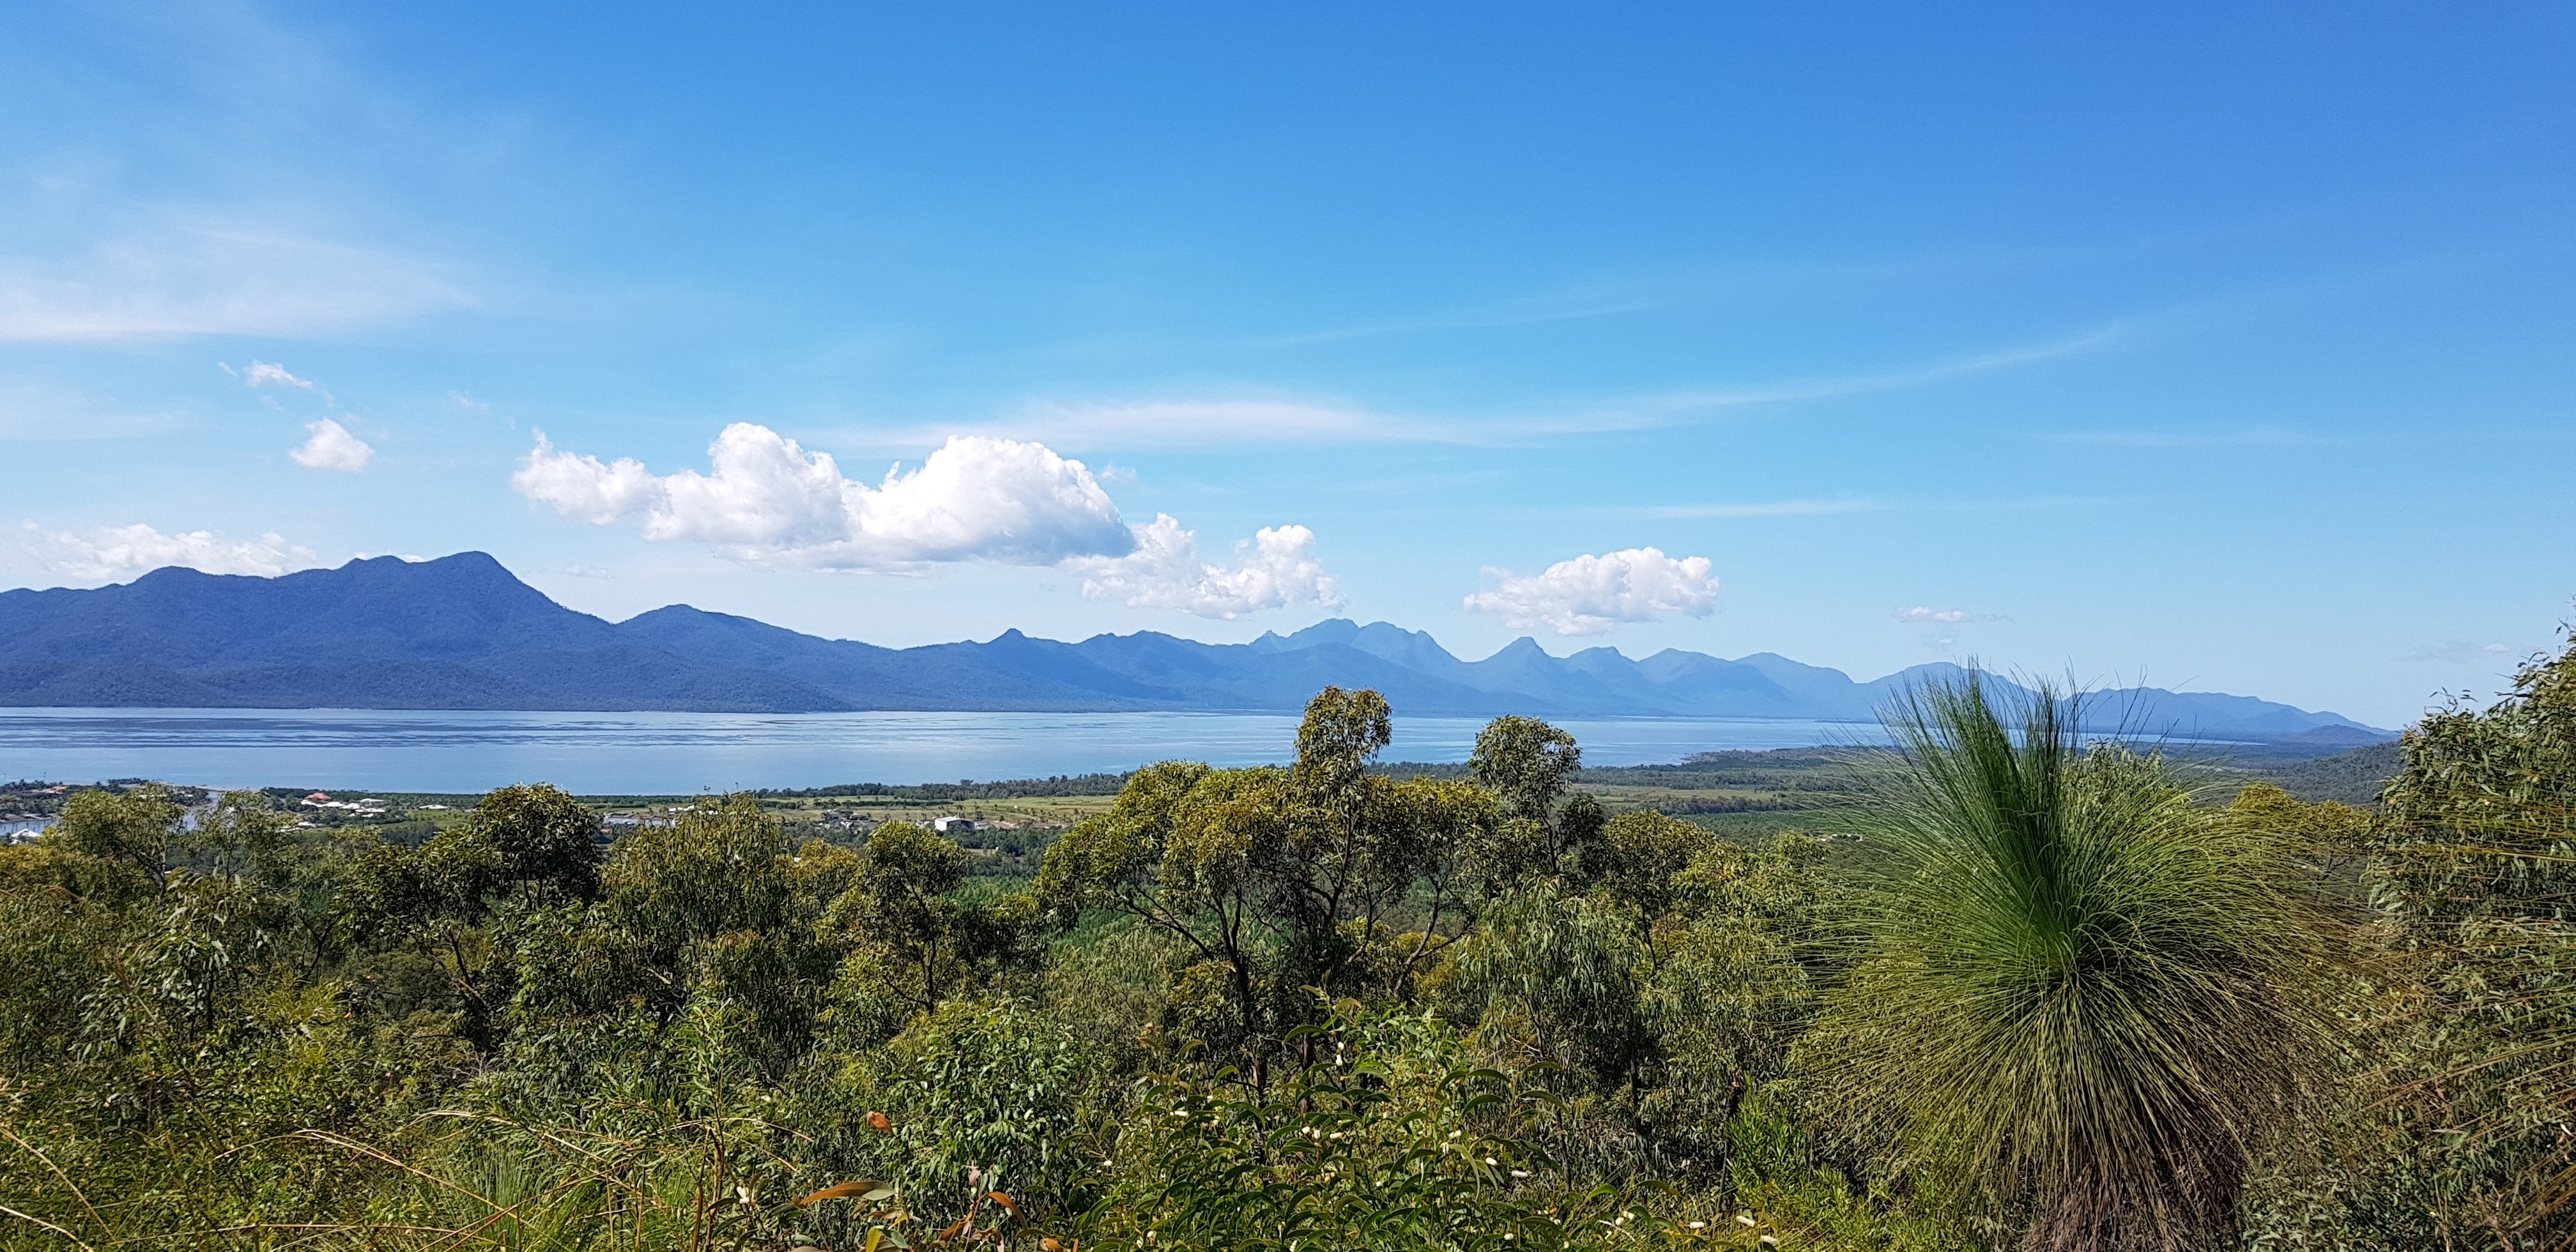 The view of Hichinbrook Island from Cardwell Lookout